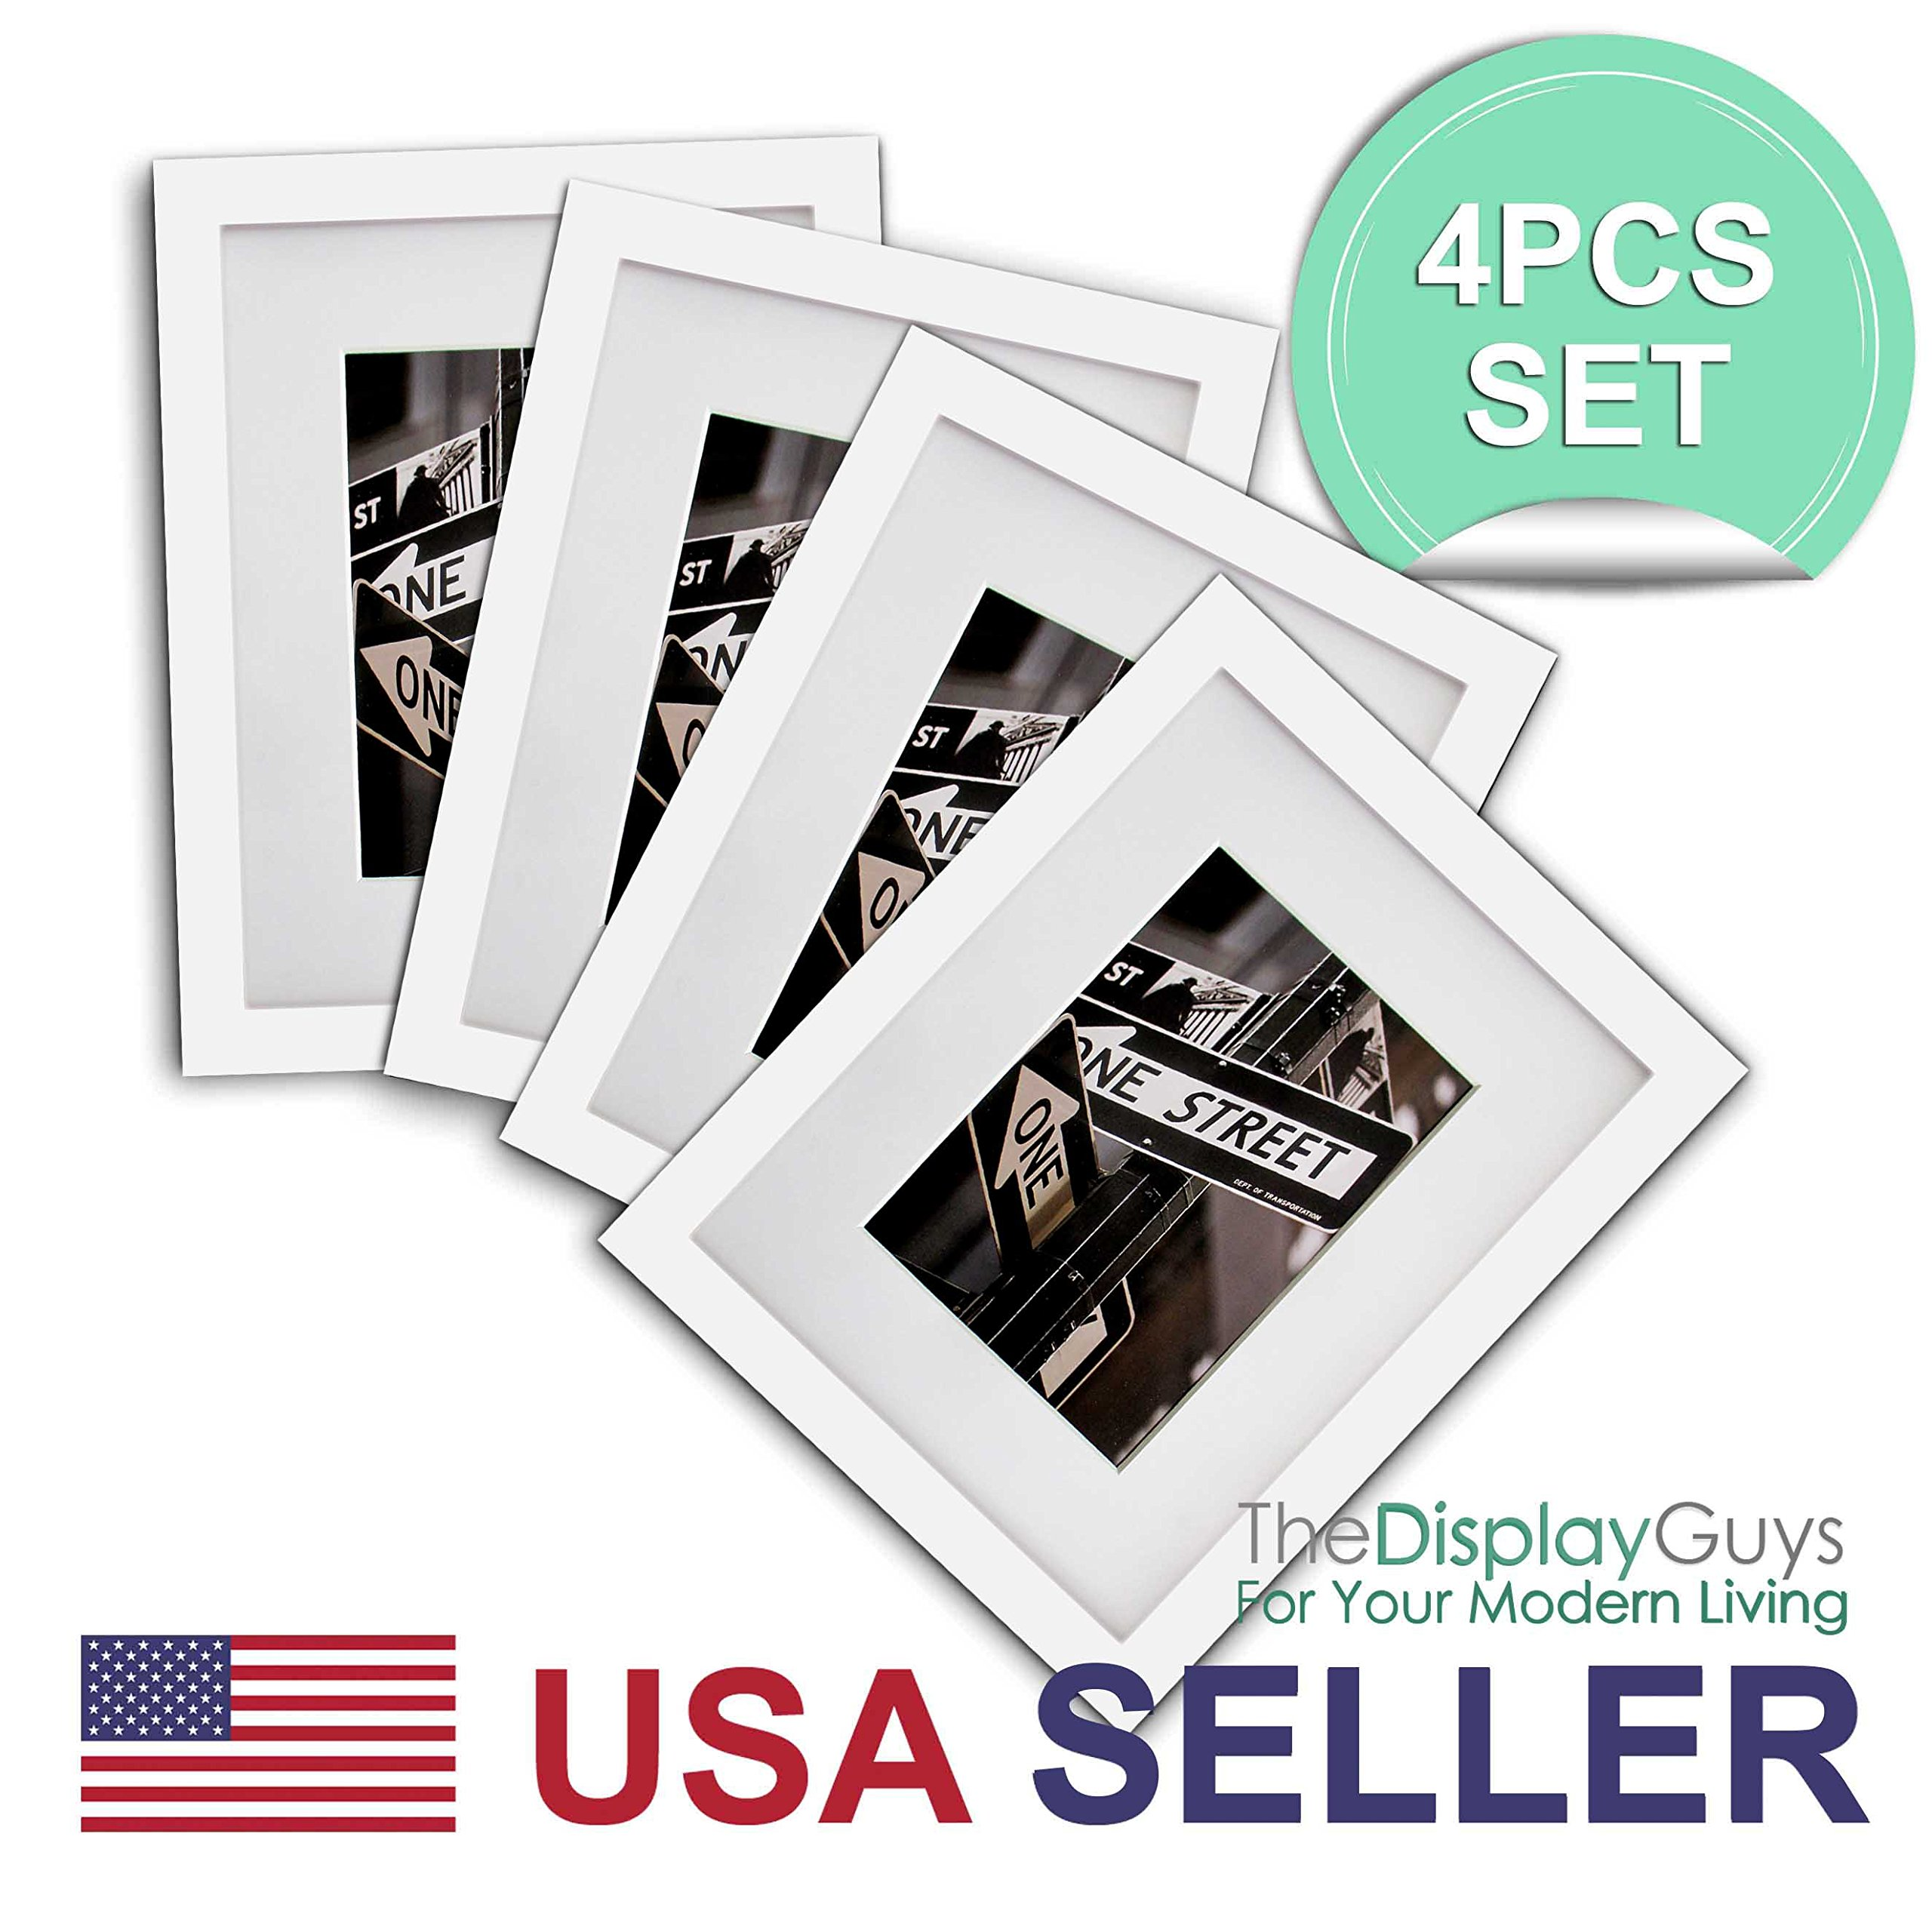 The Display Guys~ 4 Sets 11x14 inches White Solid Pine Wood Photo Frame, Tempered Glass, Luxury Made Affordable, with White Core Mat Boards for 8x10 Picture + Collage Mat Boards for 2-5x7 Pictures by The Display Guys